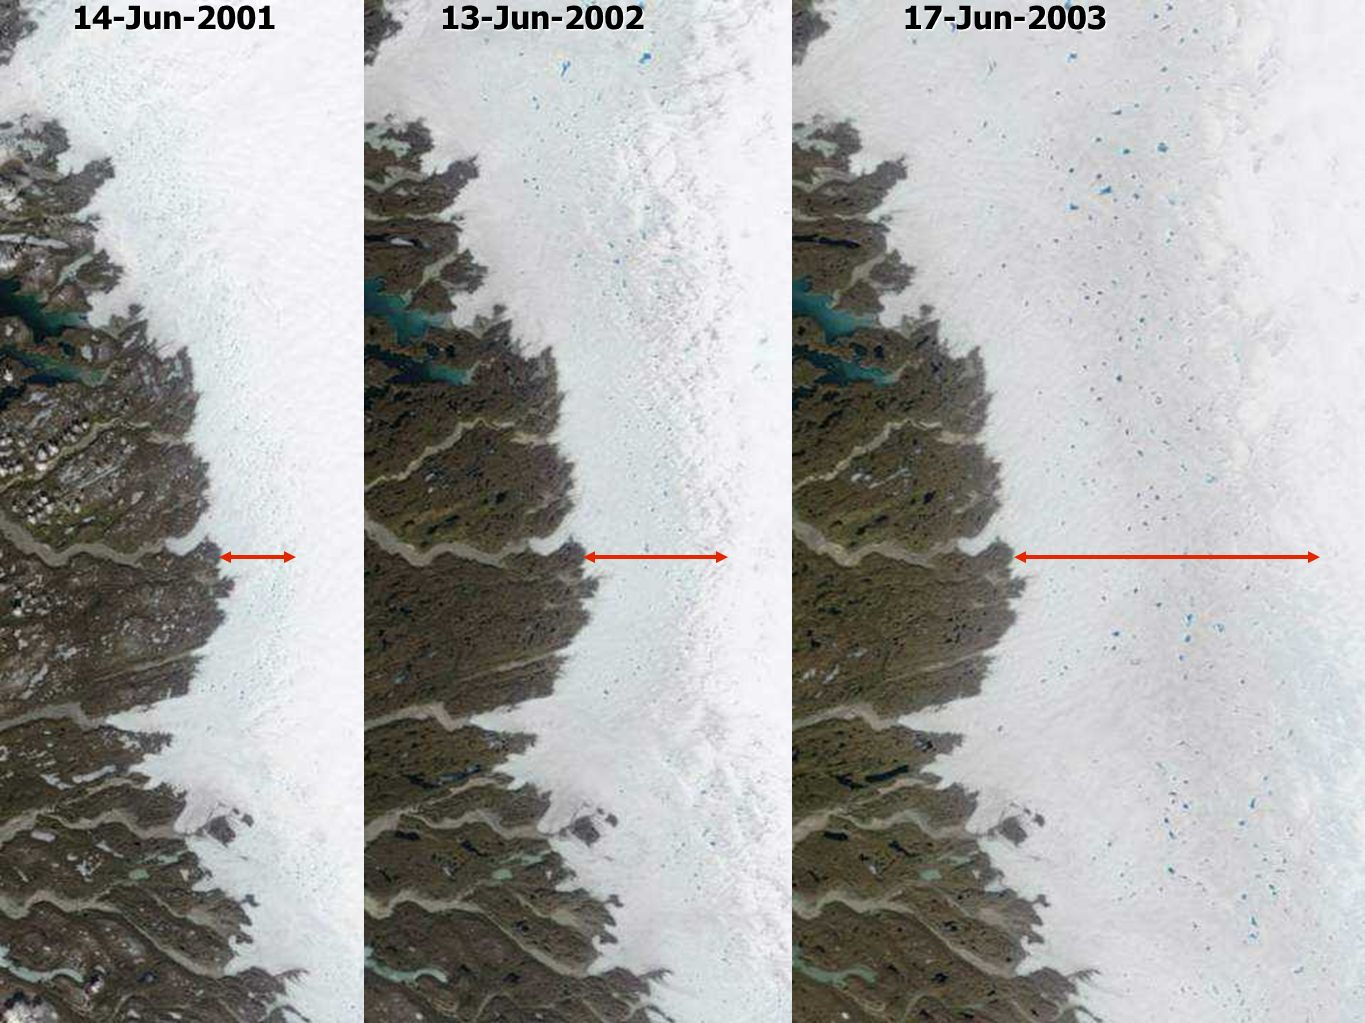 14-Jun-200113-Jun-2002. 17-Jun-2003. Satellite images reveal a widening melt area in early summer each year.